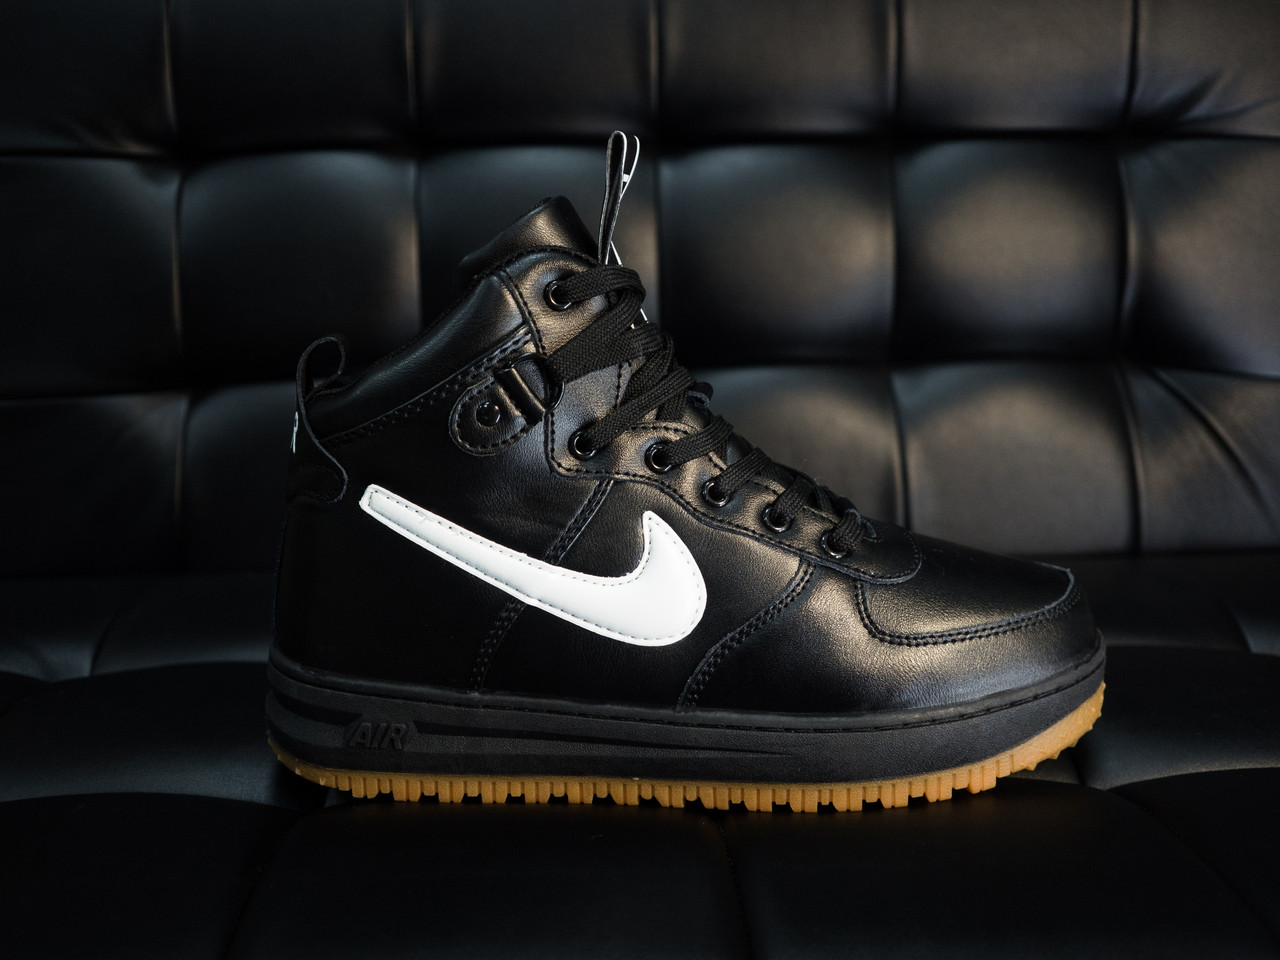 a417dc99 Зимние Кроссовки Nike Lunar Force 1 Duckboot на меху! - Интернет магазин  Big Bob в